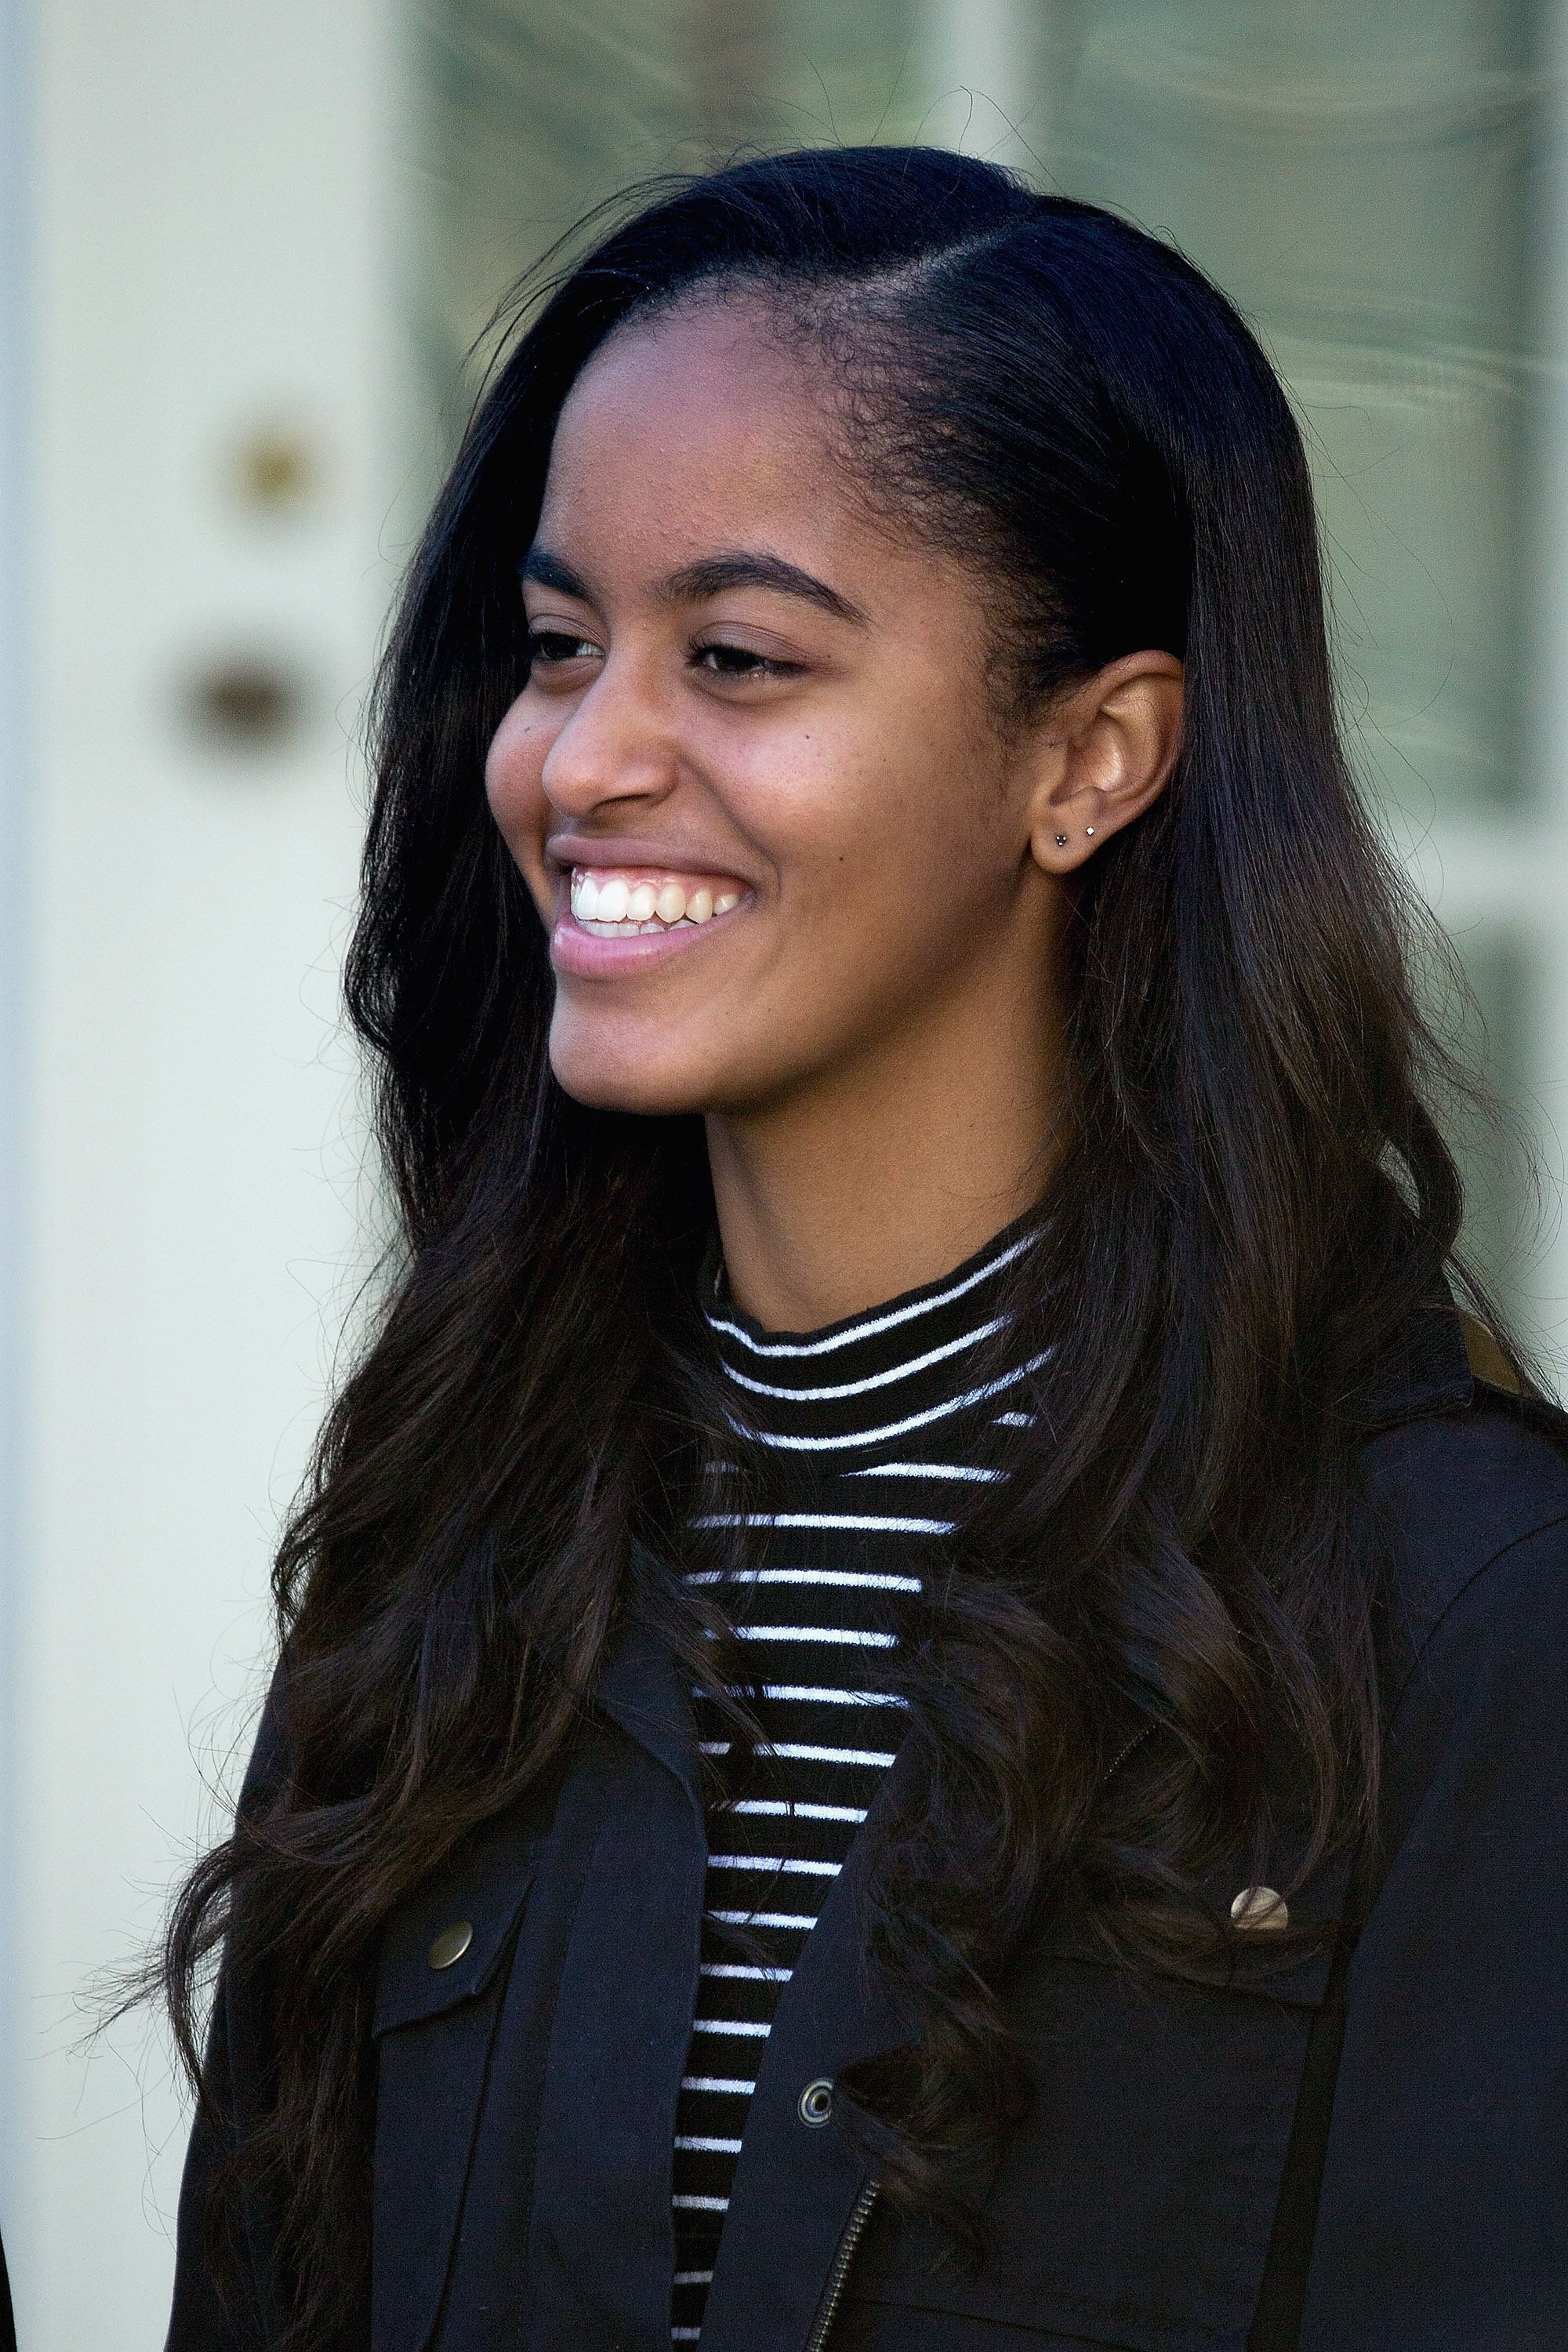 Malia Obama Proves Why She's America's Sweetheart On Our Cheap Celeb Finds